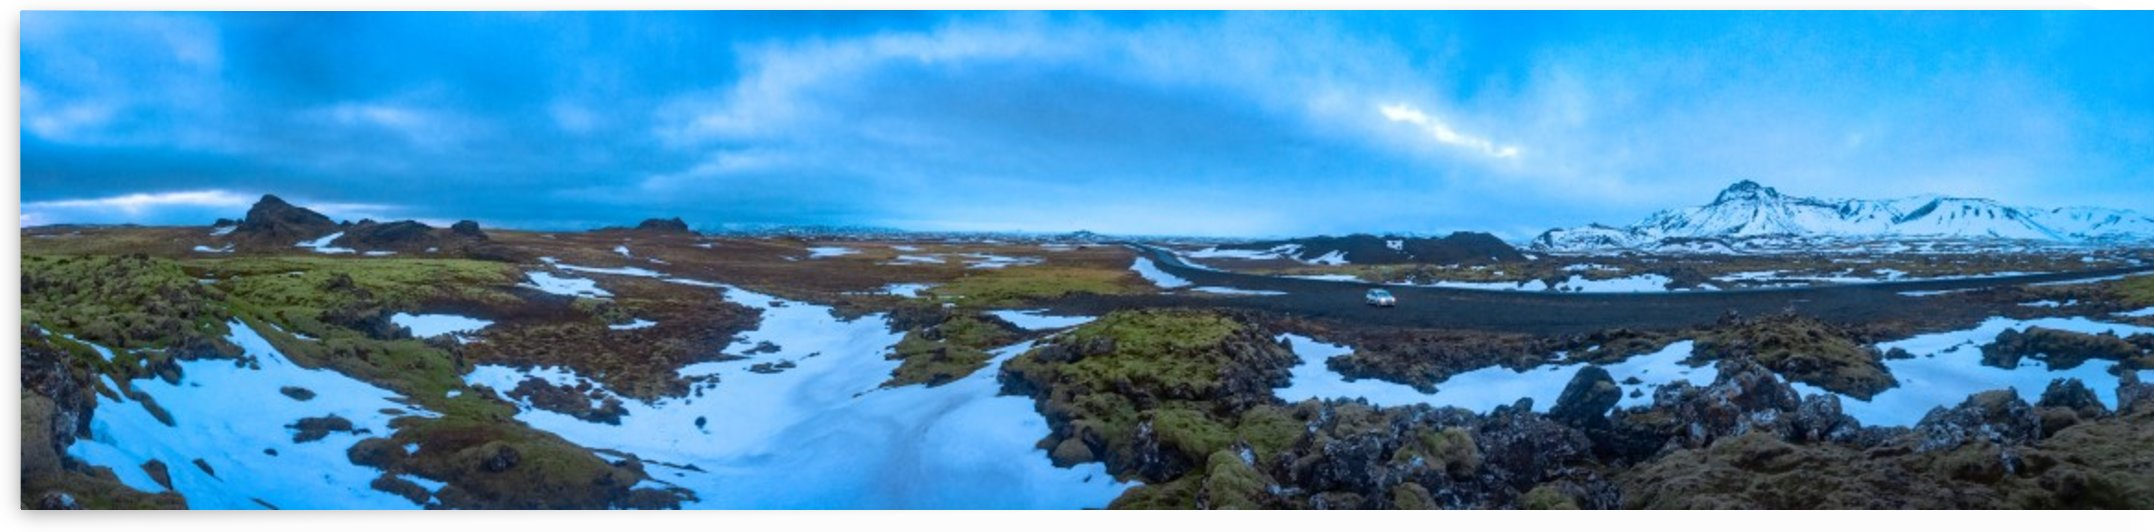 Iceland panorama by By the C Media